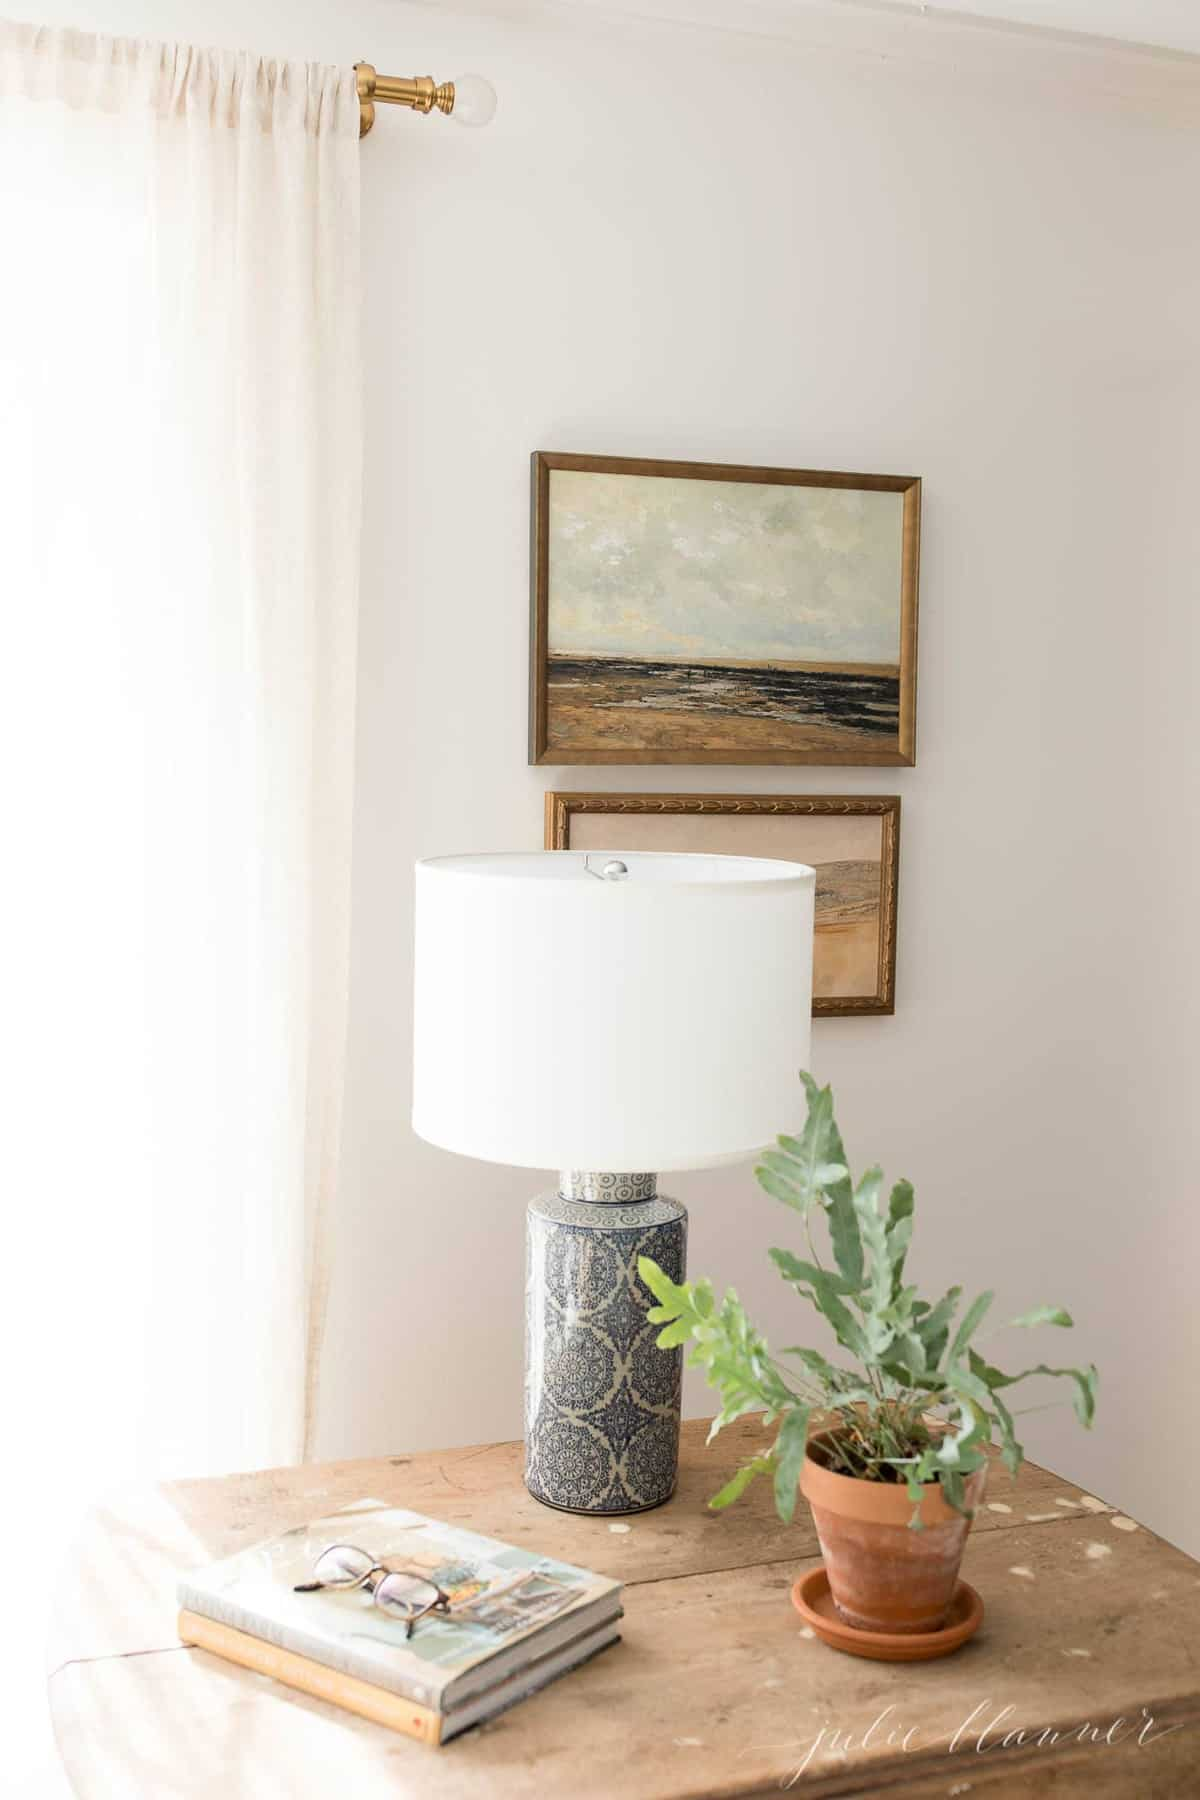 A cozy living room with a wooden accent table, lamp plant and art in the background.